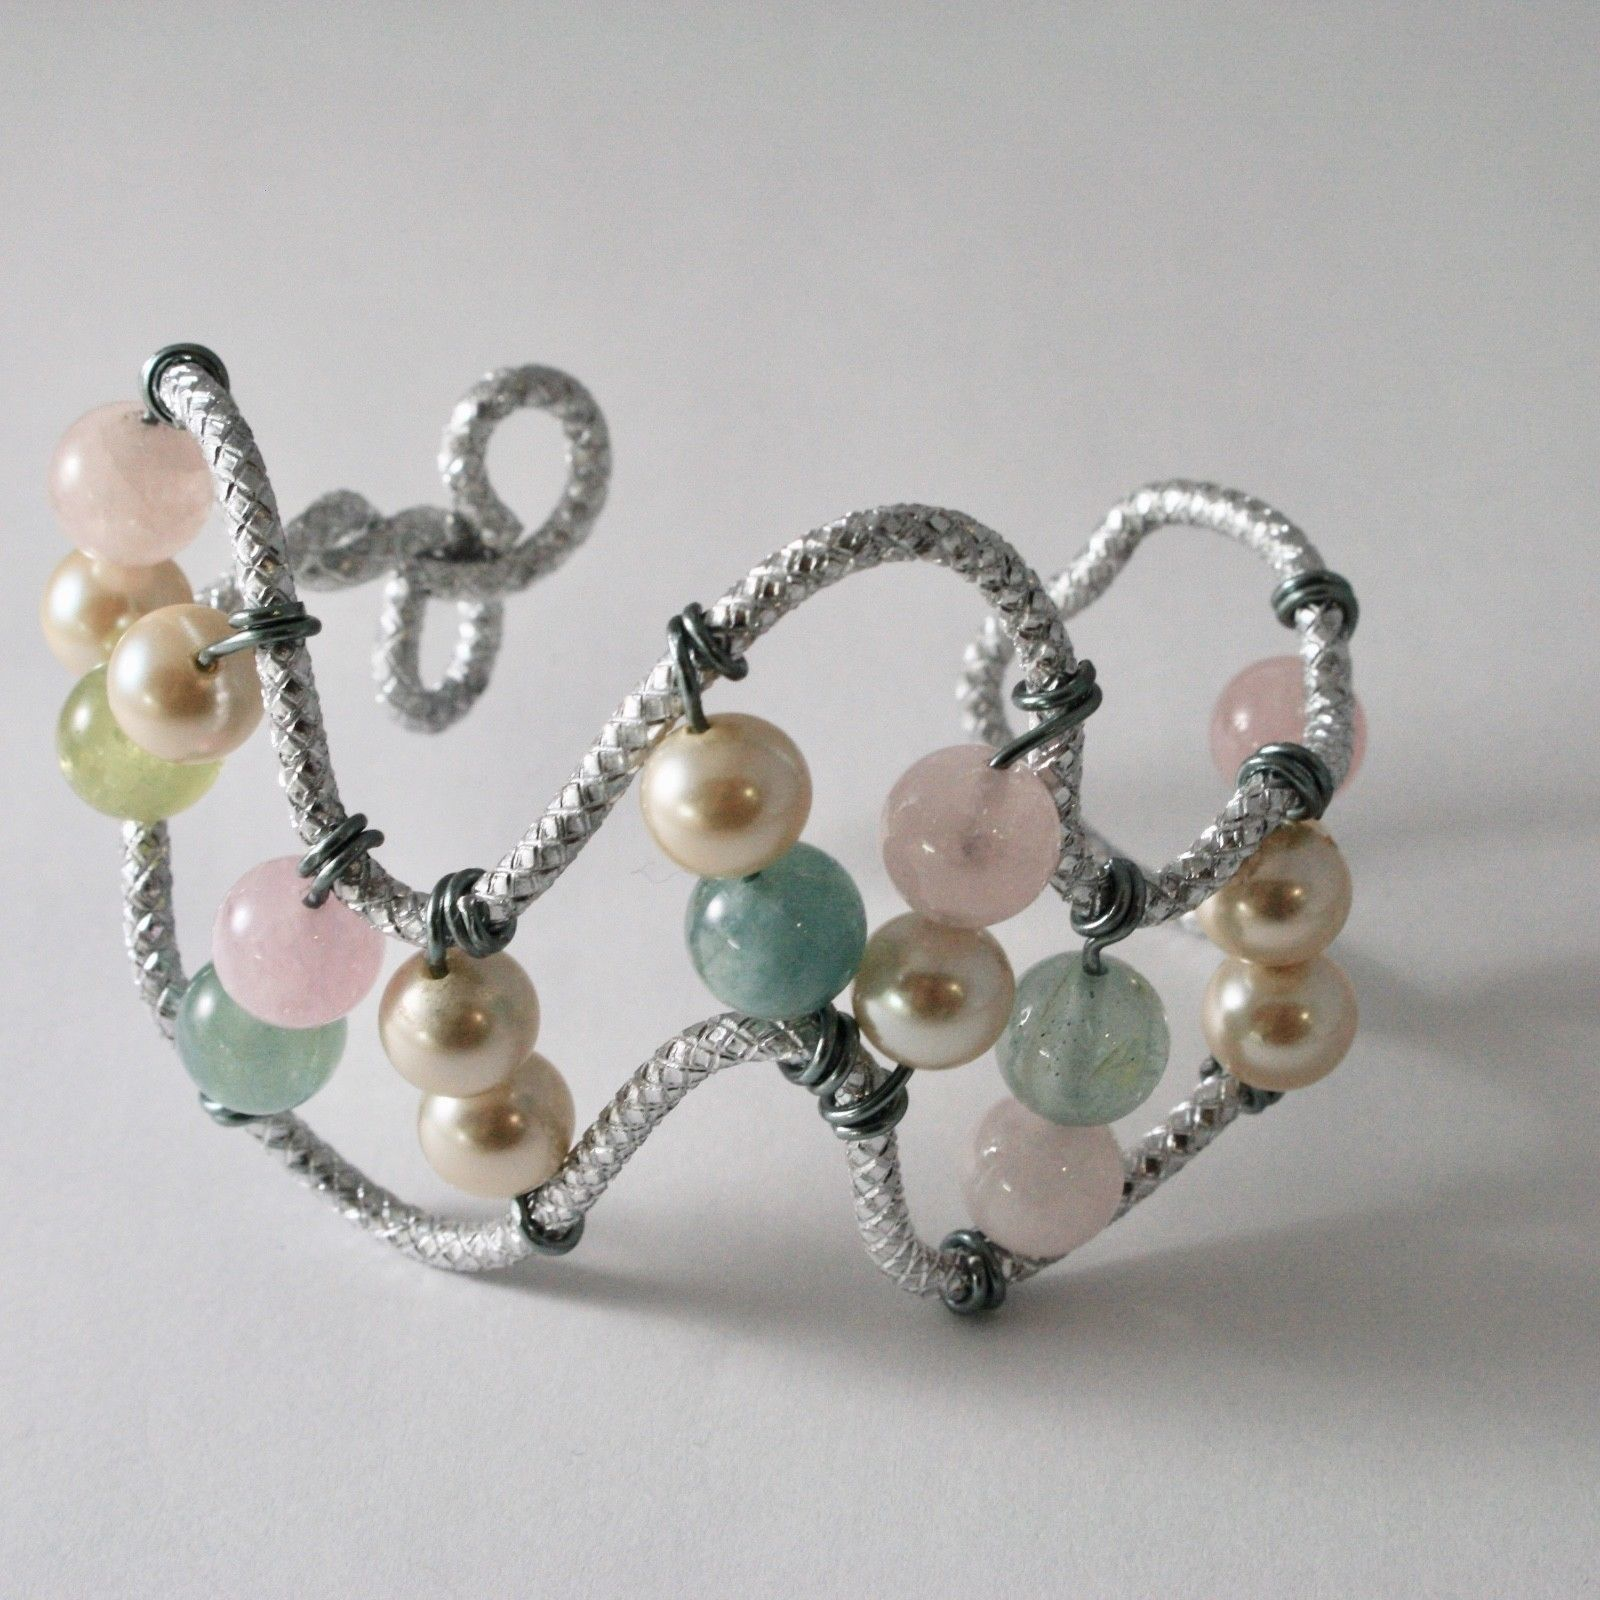 BRACELET ALUMINUM WITH AQUAMARINE NATURAL MULTICOLORED PEARLS